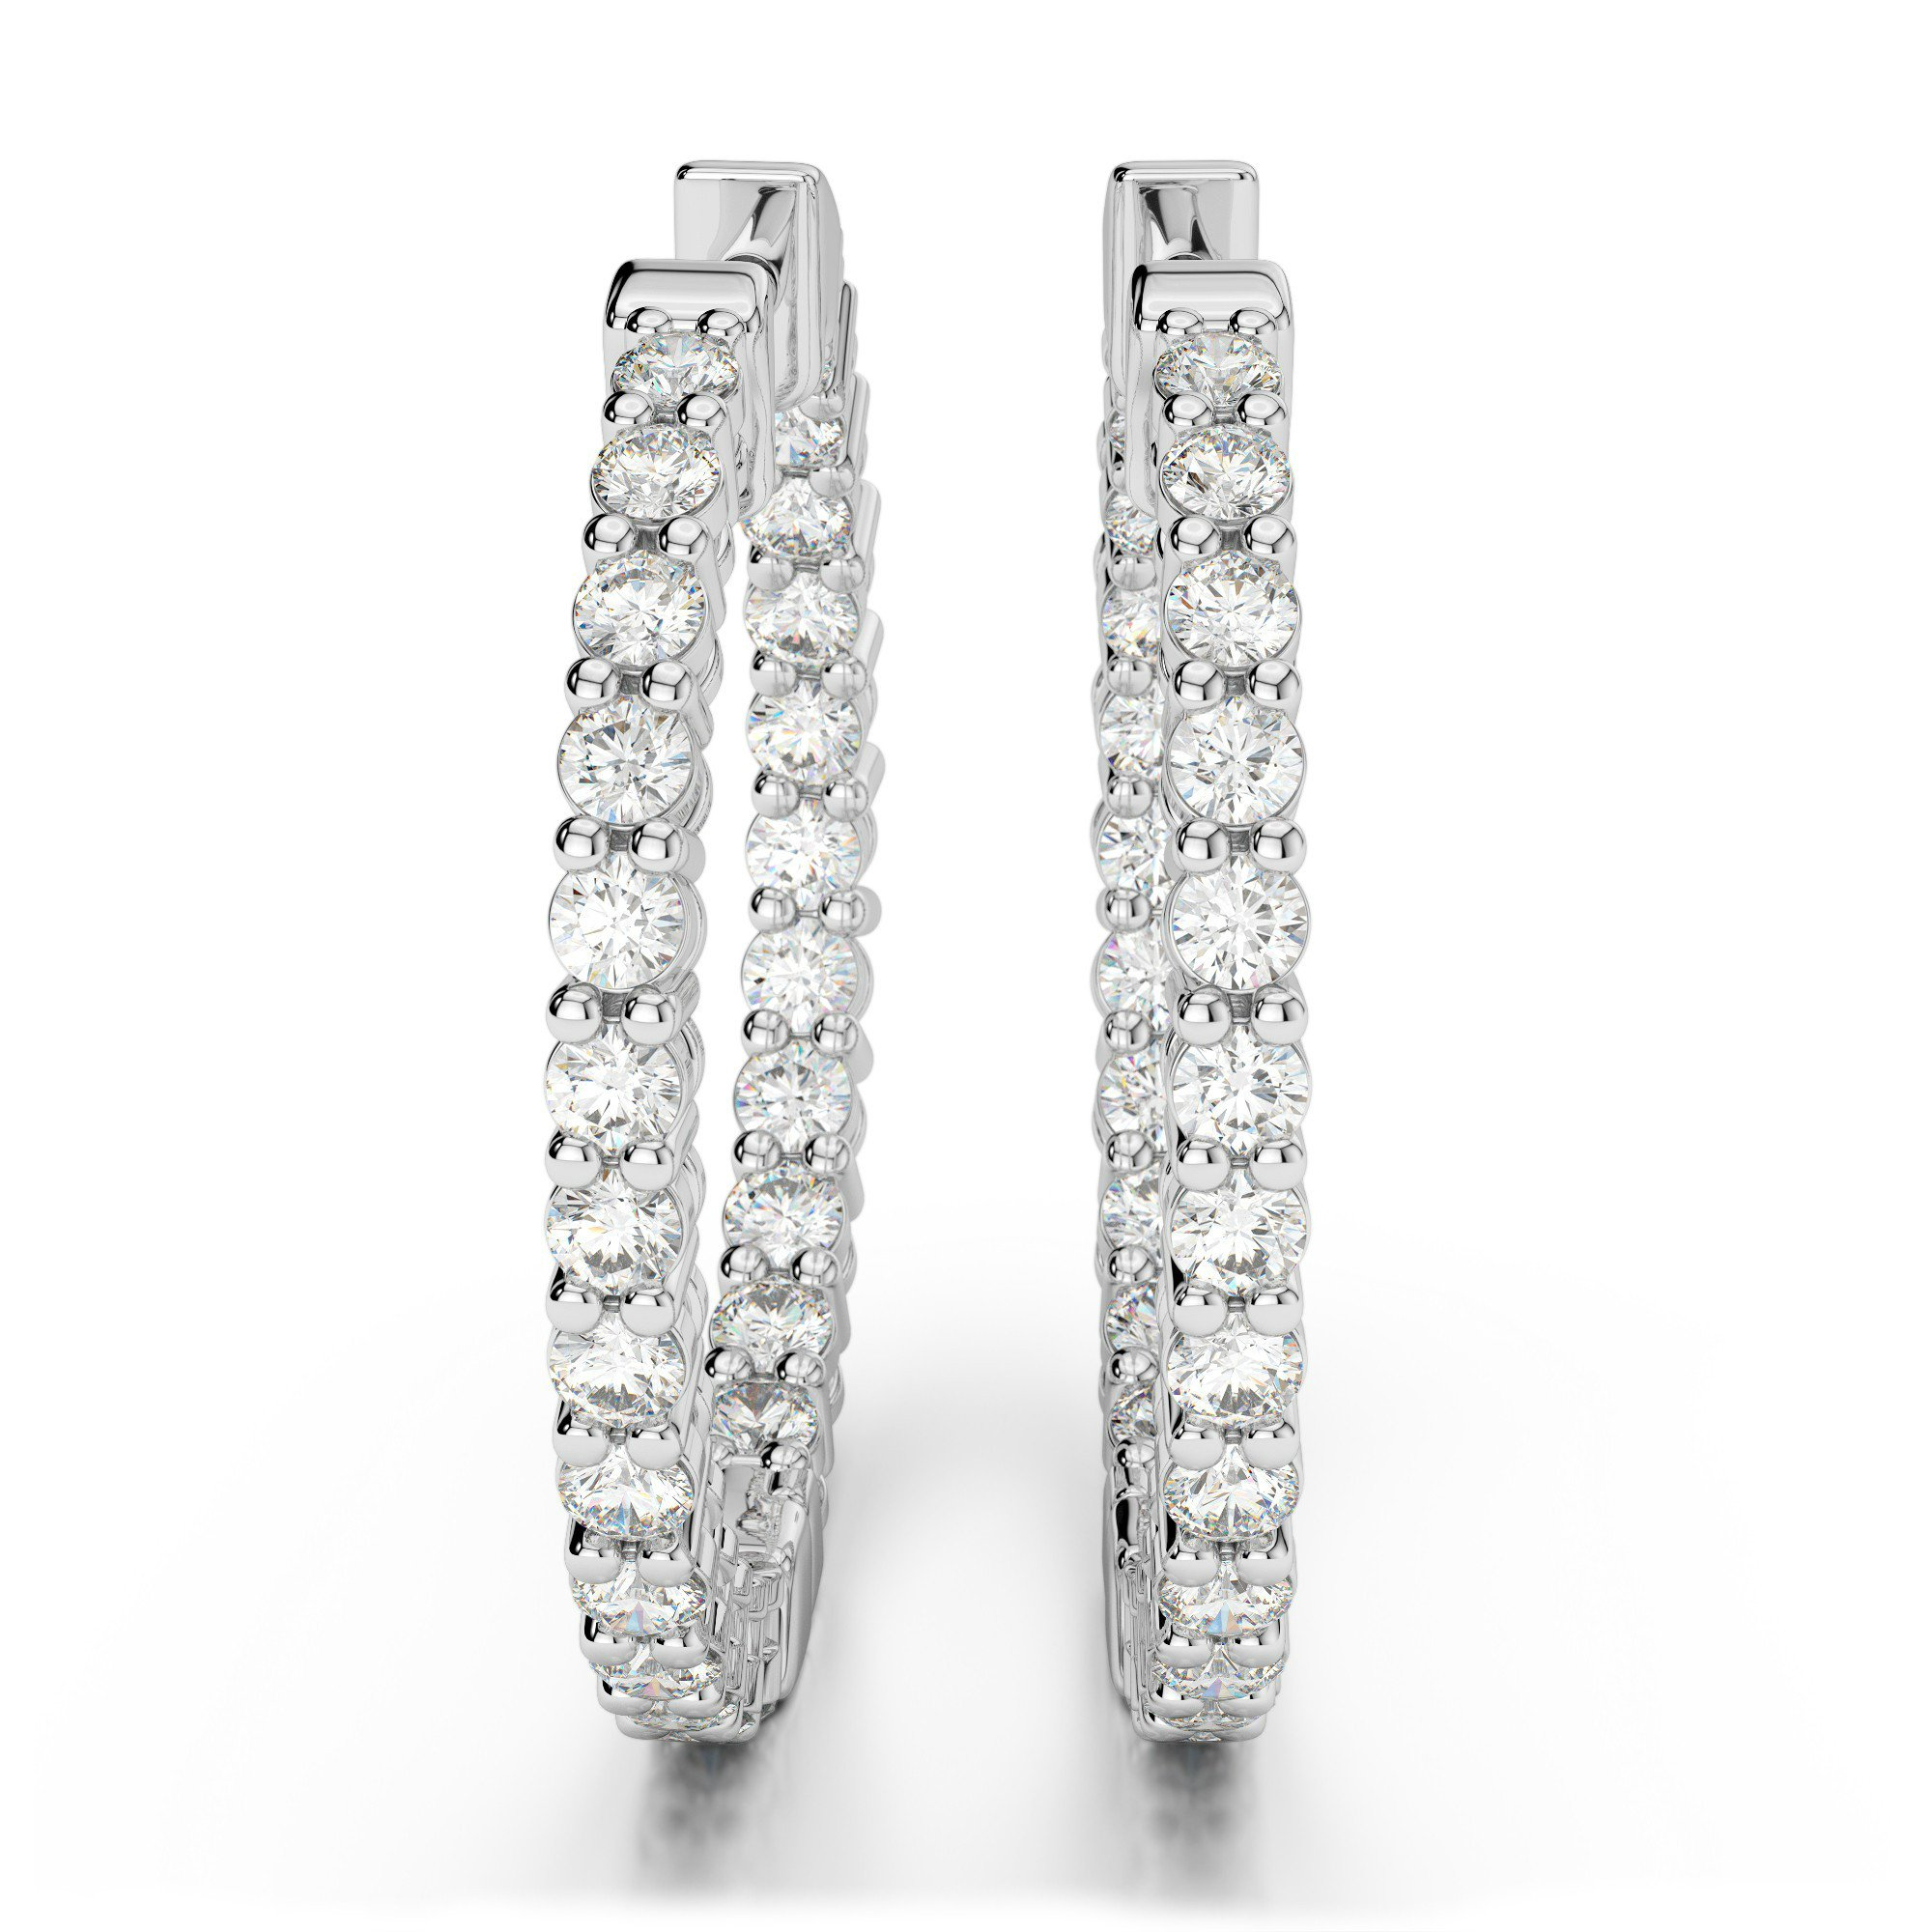 1.50 Carat Diamond Hoop Earrings